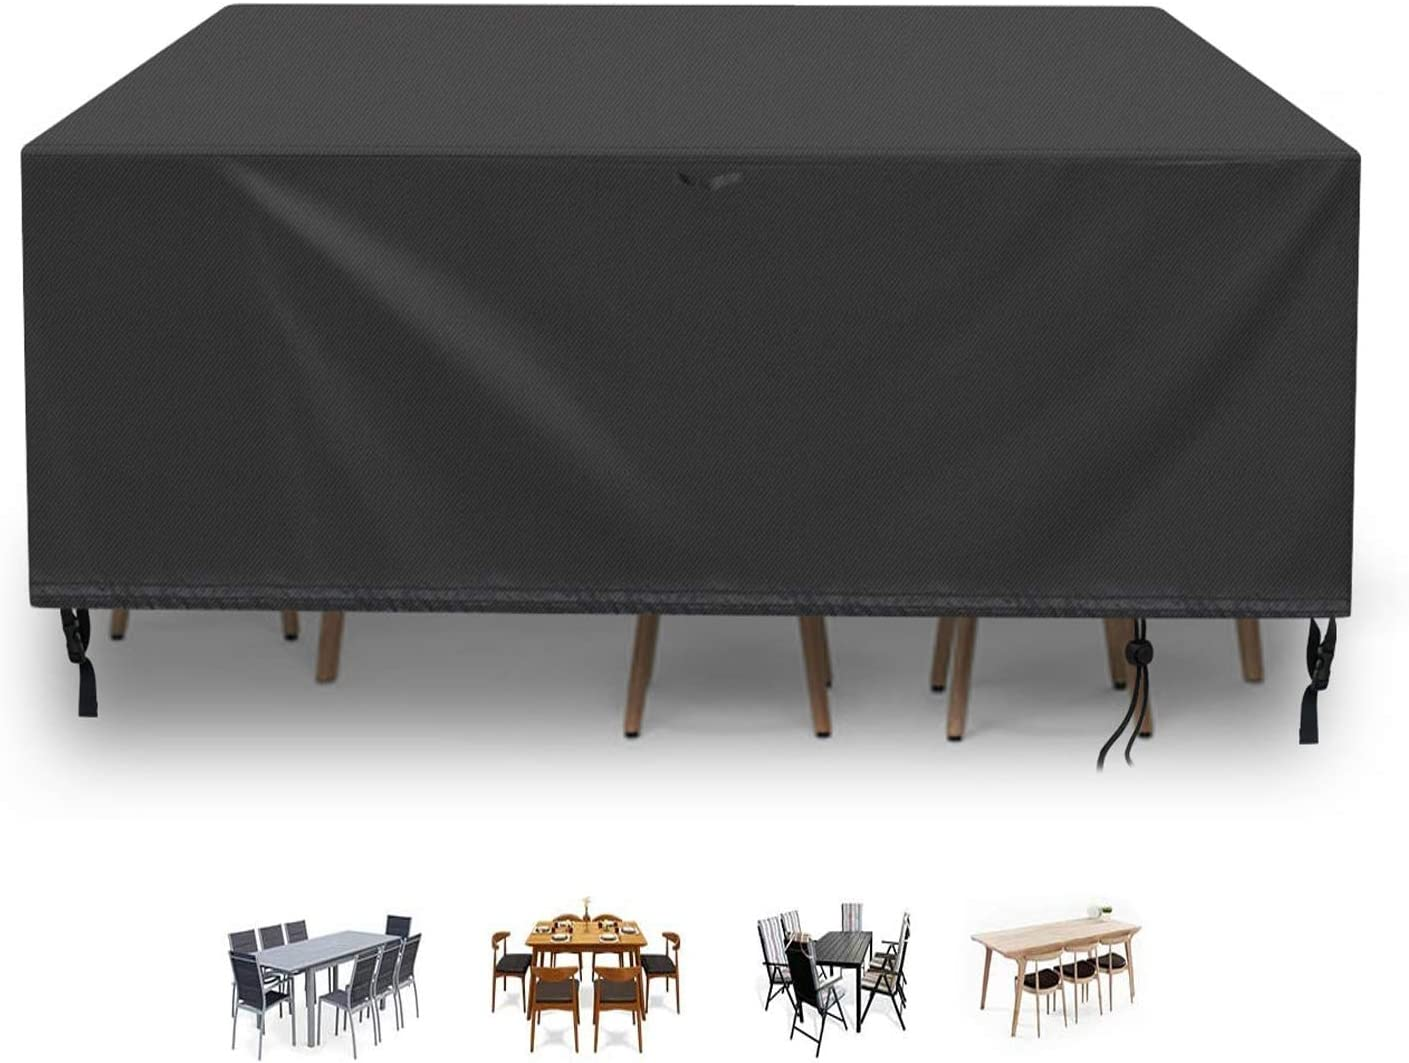 POMER Patio Furniture Cover, 84x52x29inch Waterproof and Anti-Fade Patio Table and Chairs Cover for Rectangular/Oval Table & Chair Set